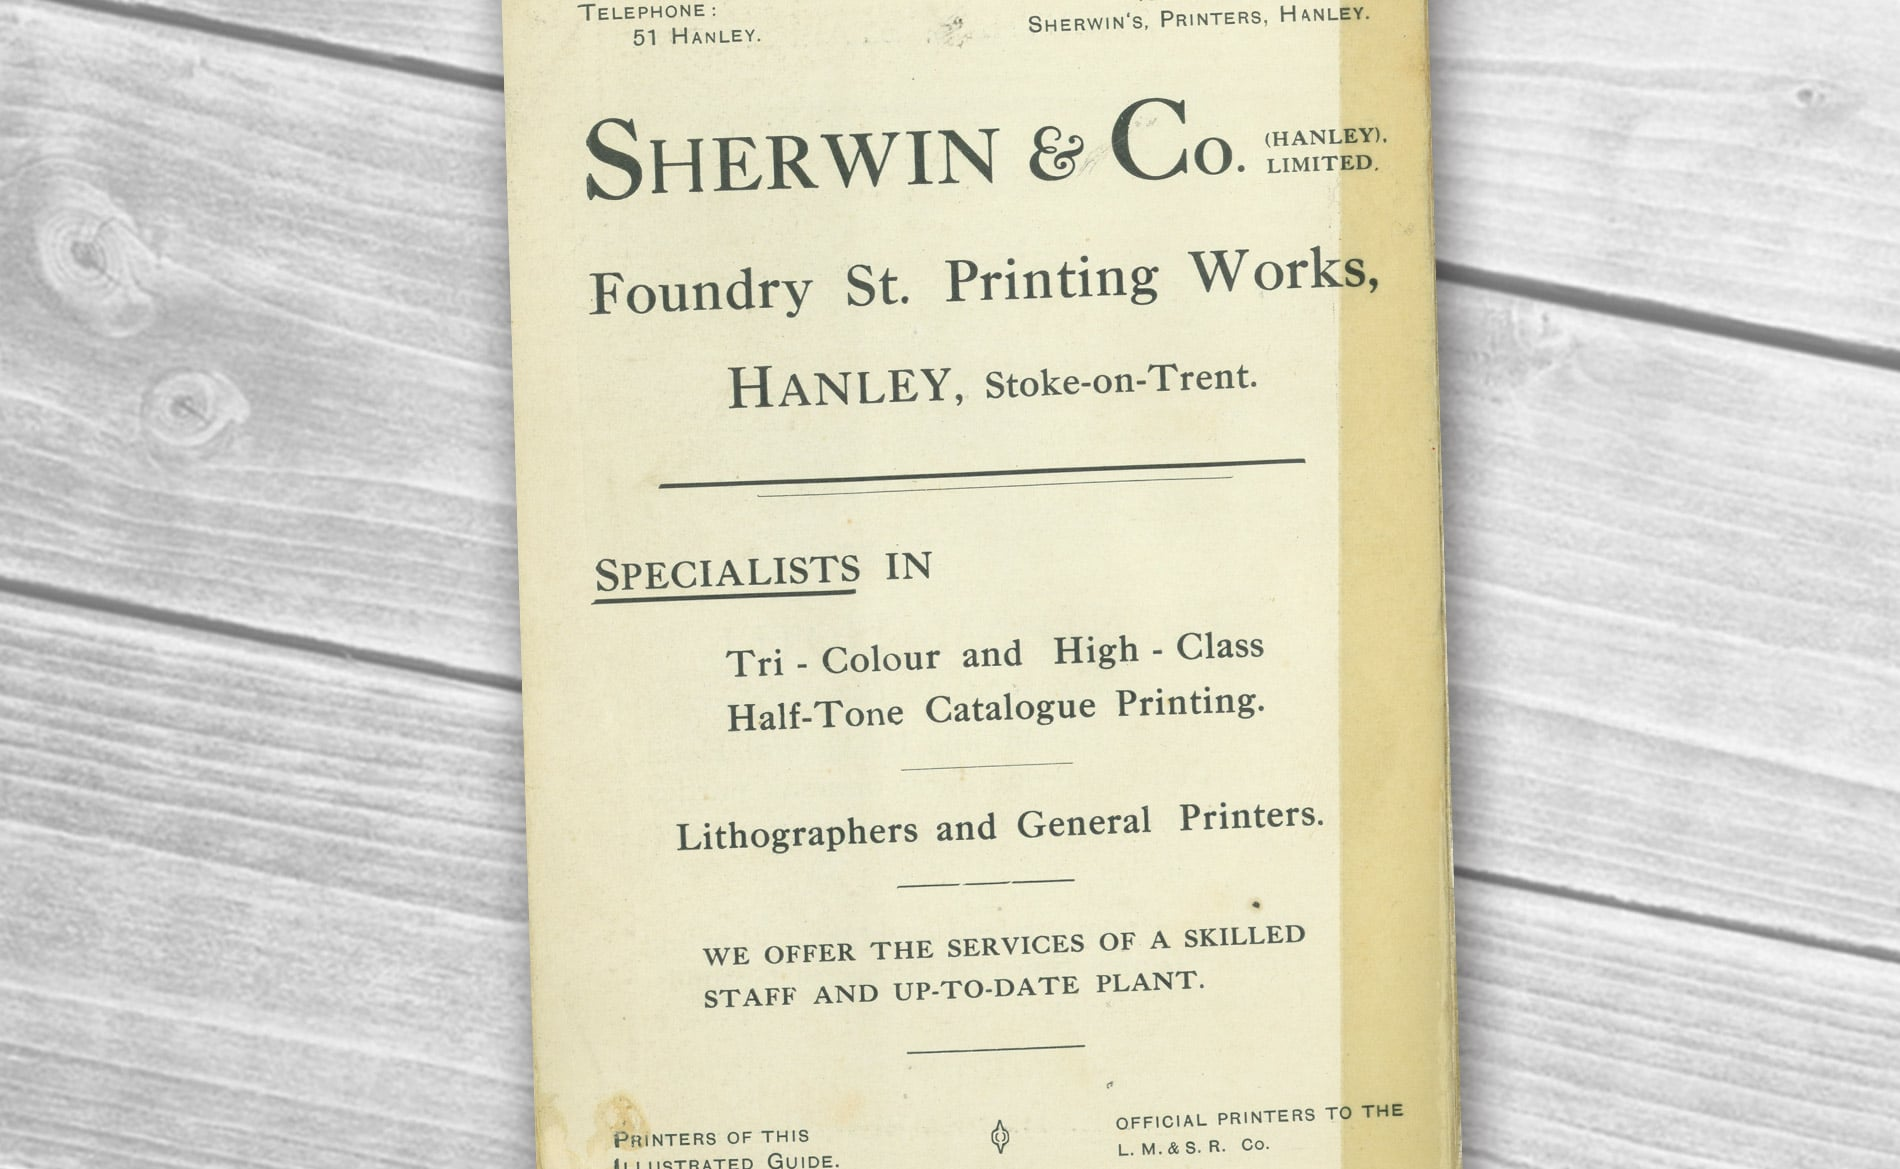 Sherwin Rivers Printers Ltd - Stoke-on-Trent, Staffordshire, Family run printing company for over a century - Advert from Picturesque Staffordshire